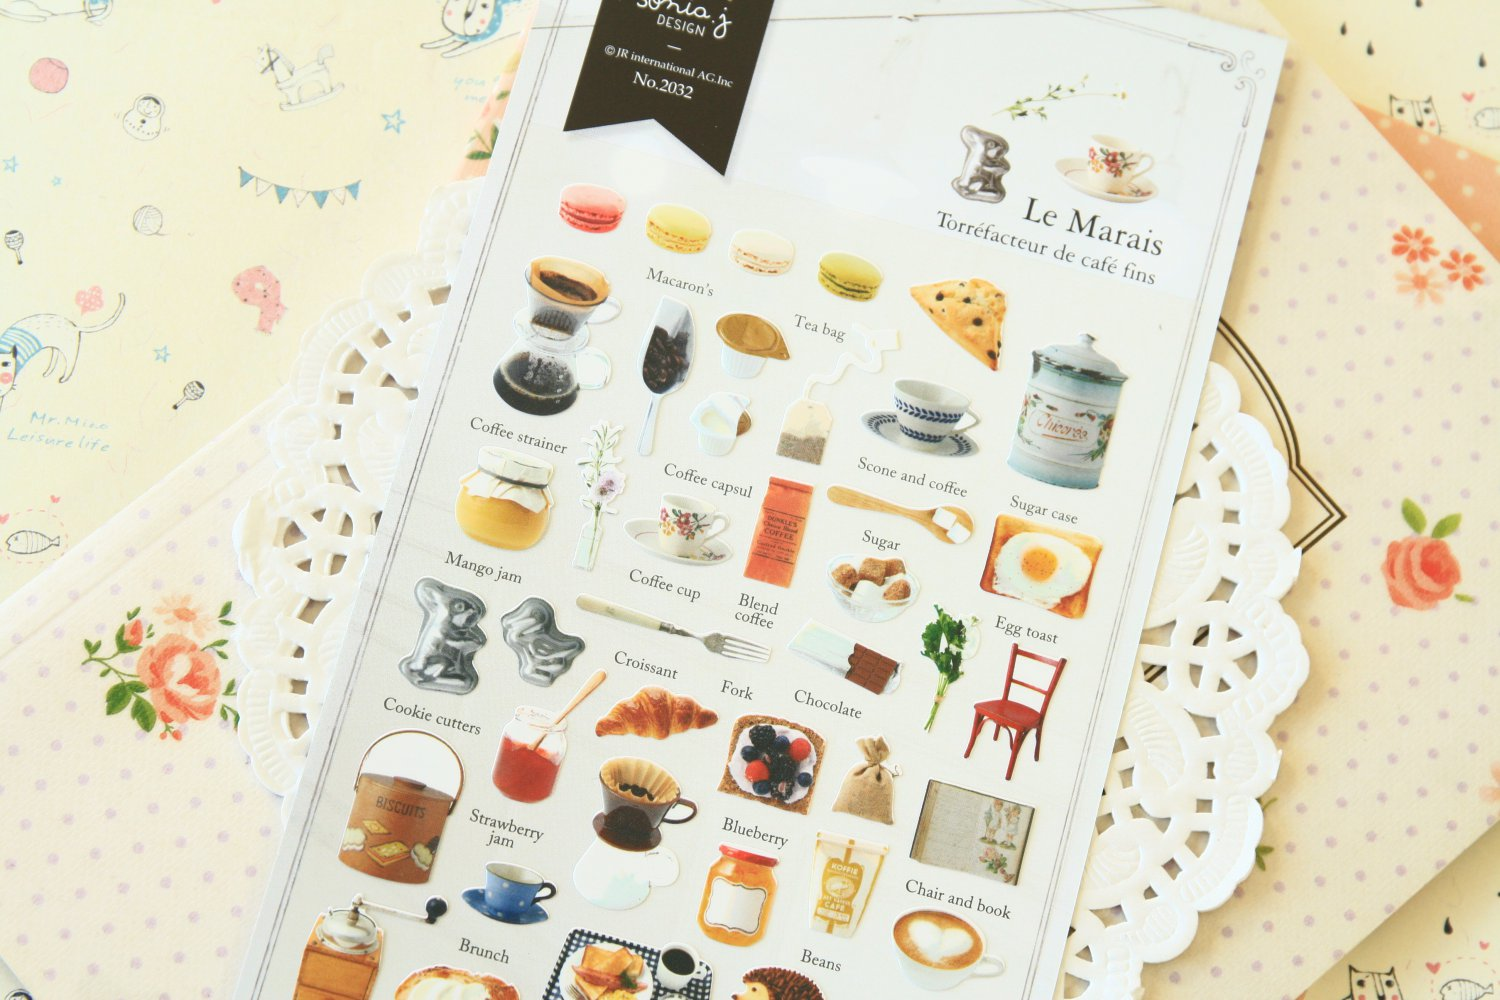 Le Marais Sonia cafe deco scrapbooking stickers